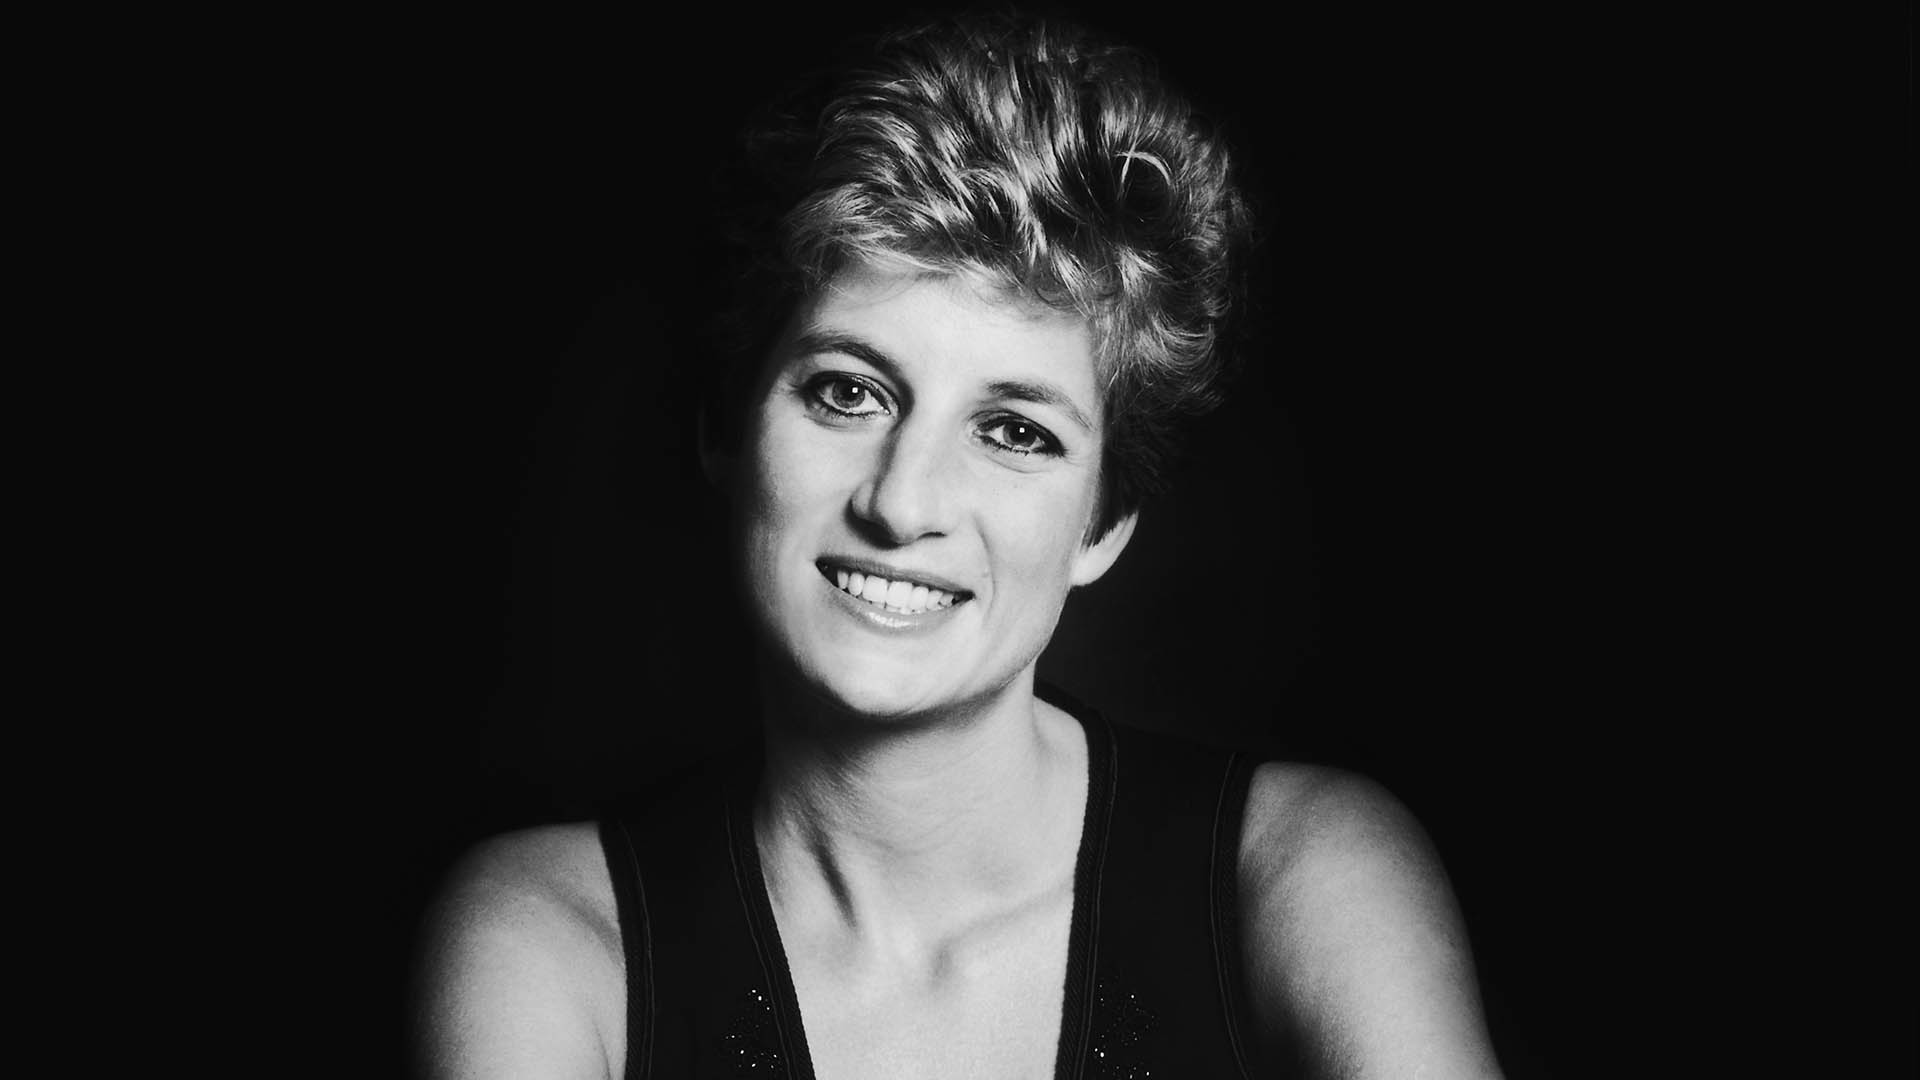 Late Princess Diana tells 'Her Story' in new documentary on PBS